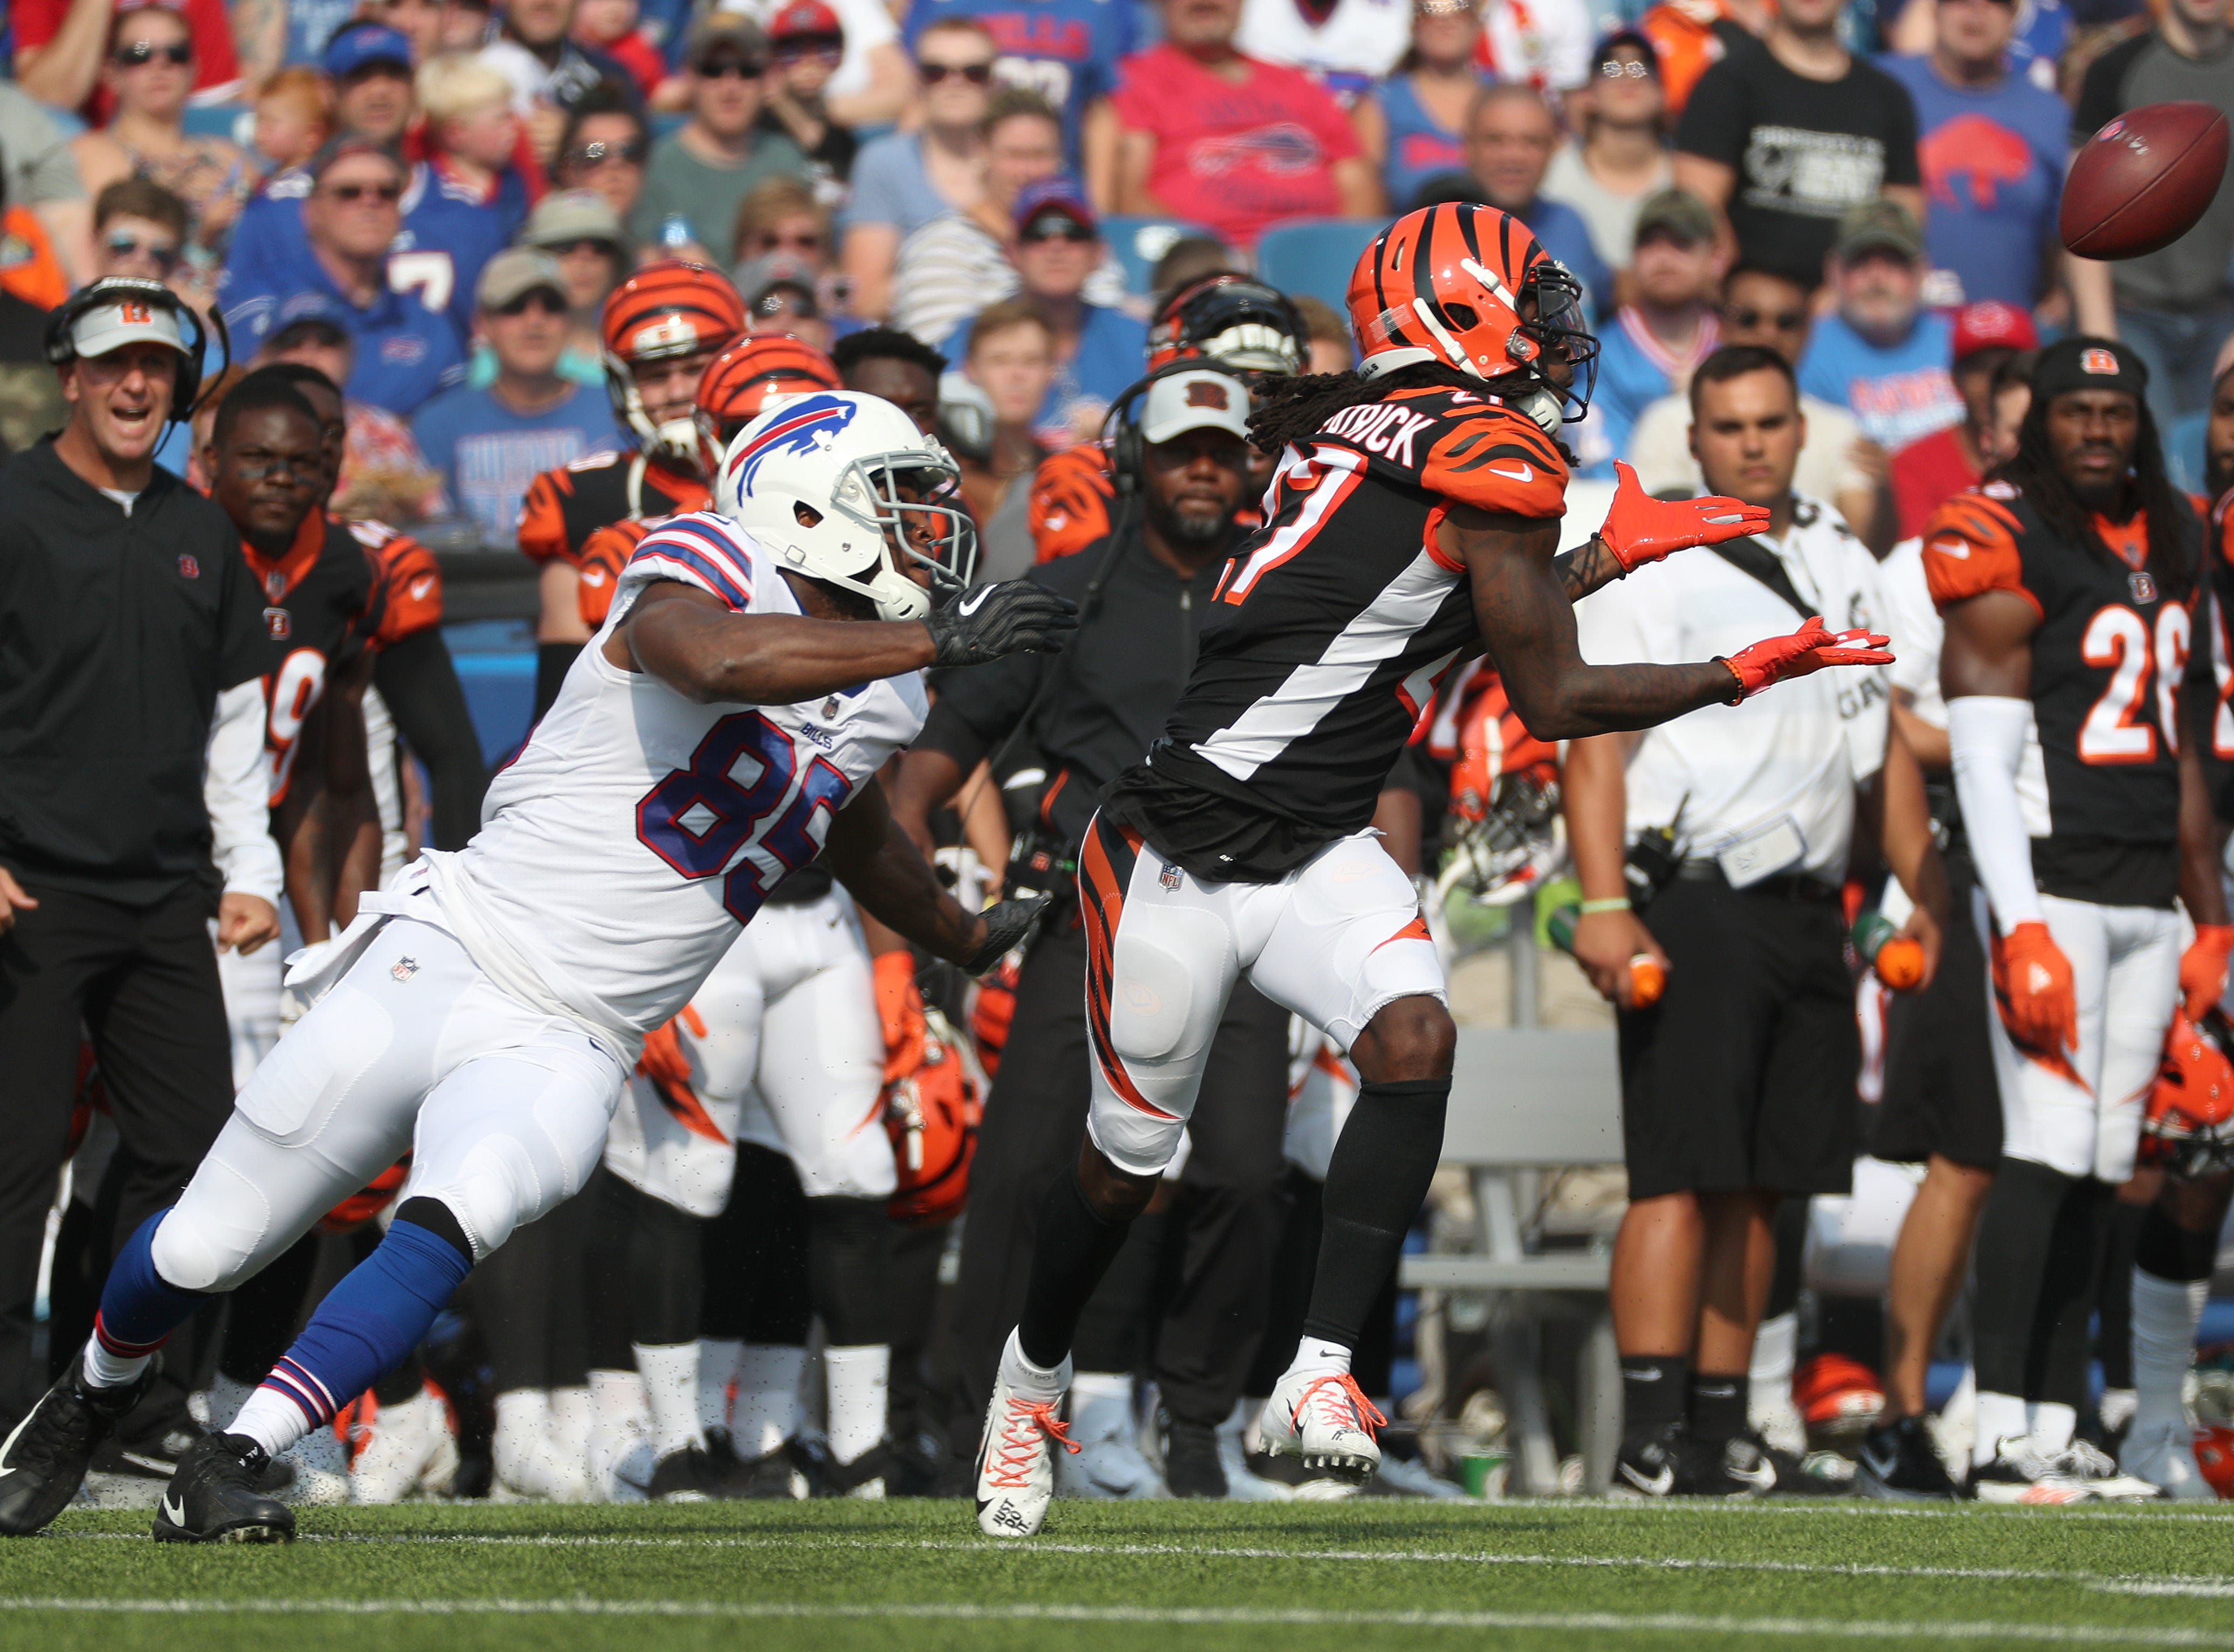 Bengals cornerback Dre Kirkpatrick steps in front a pass intended for Bills Charles Clay.  Kirkpatrick couldn't hold onto the pass which fell incomplete.